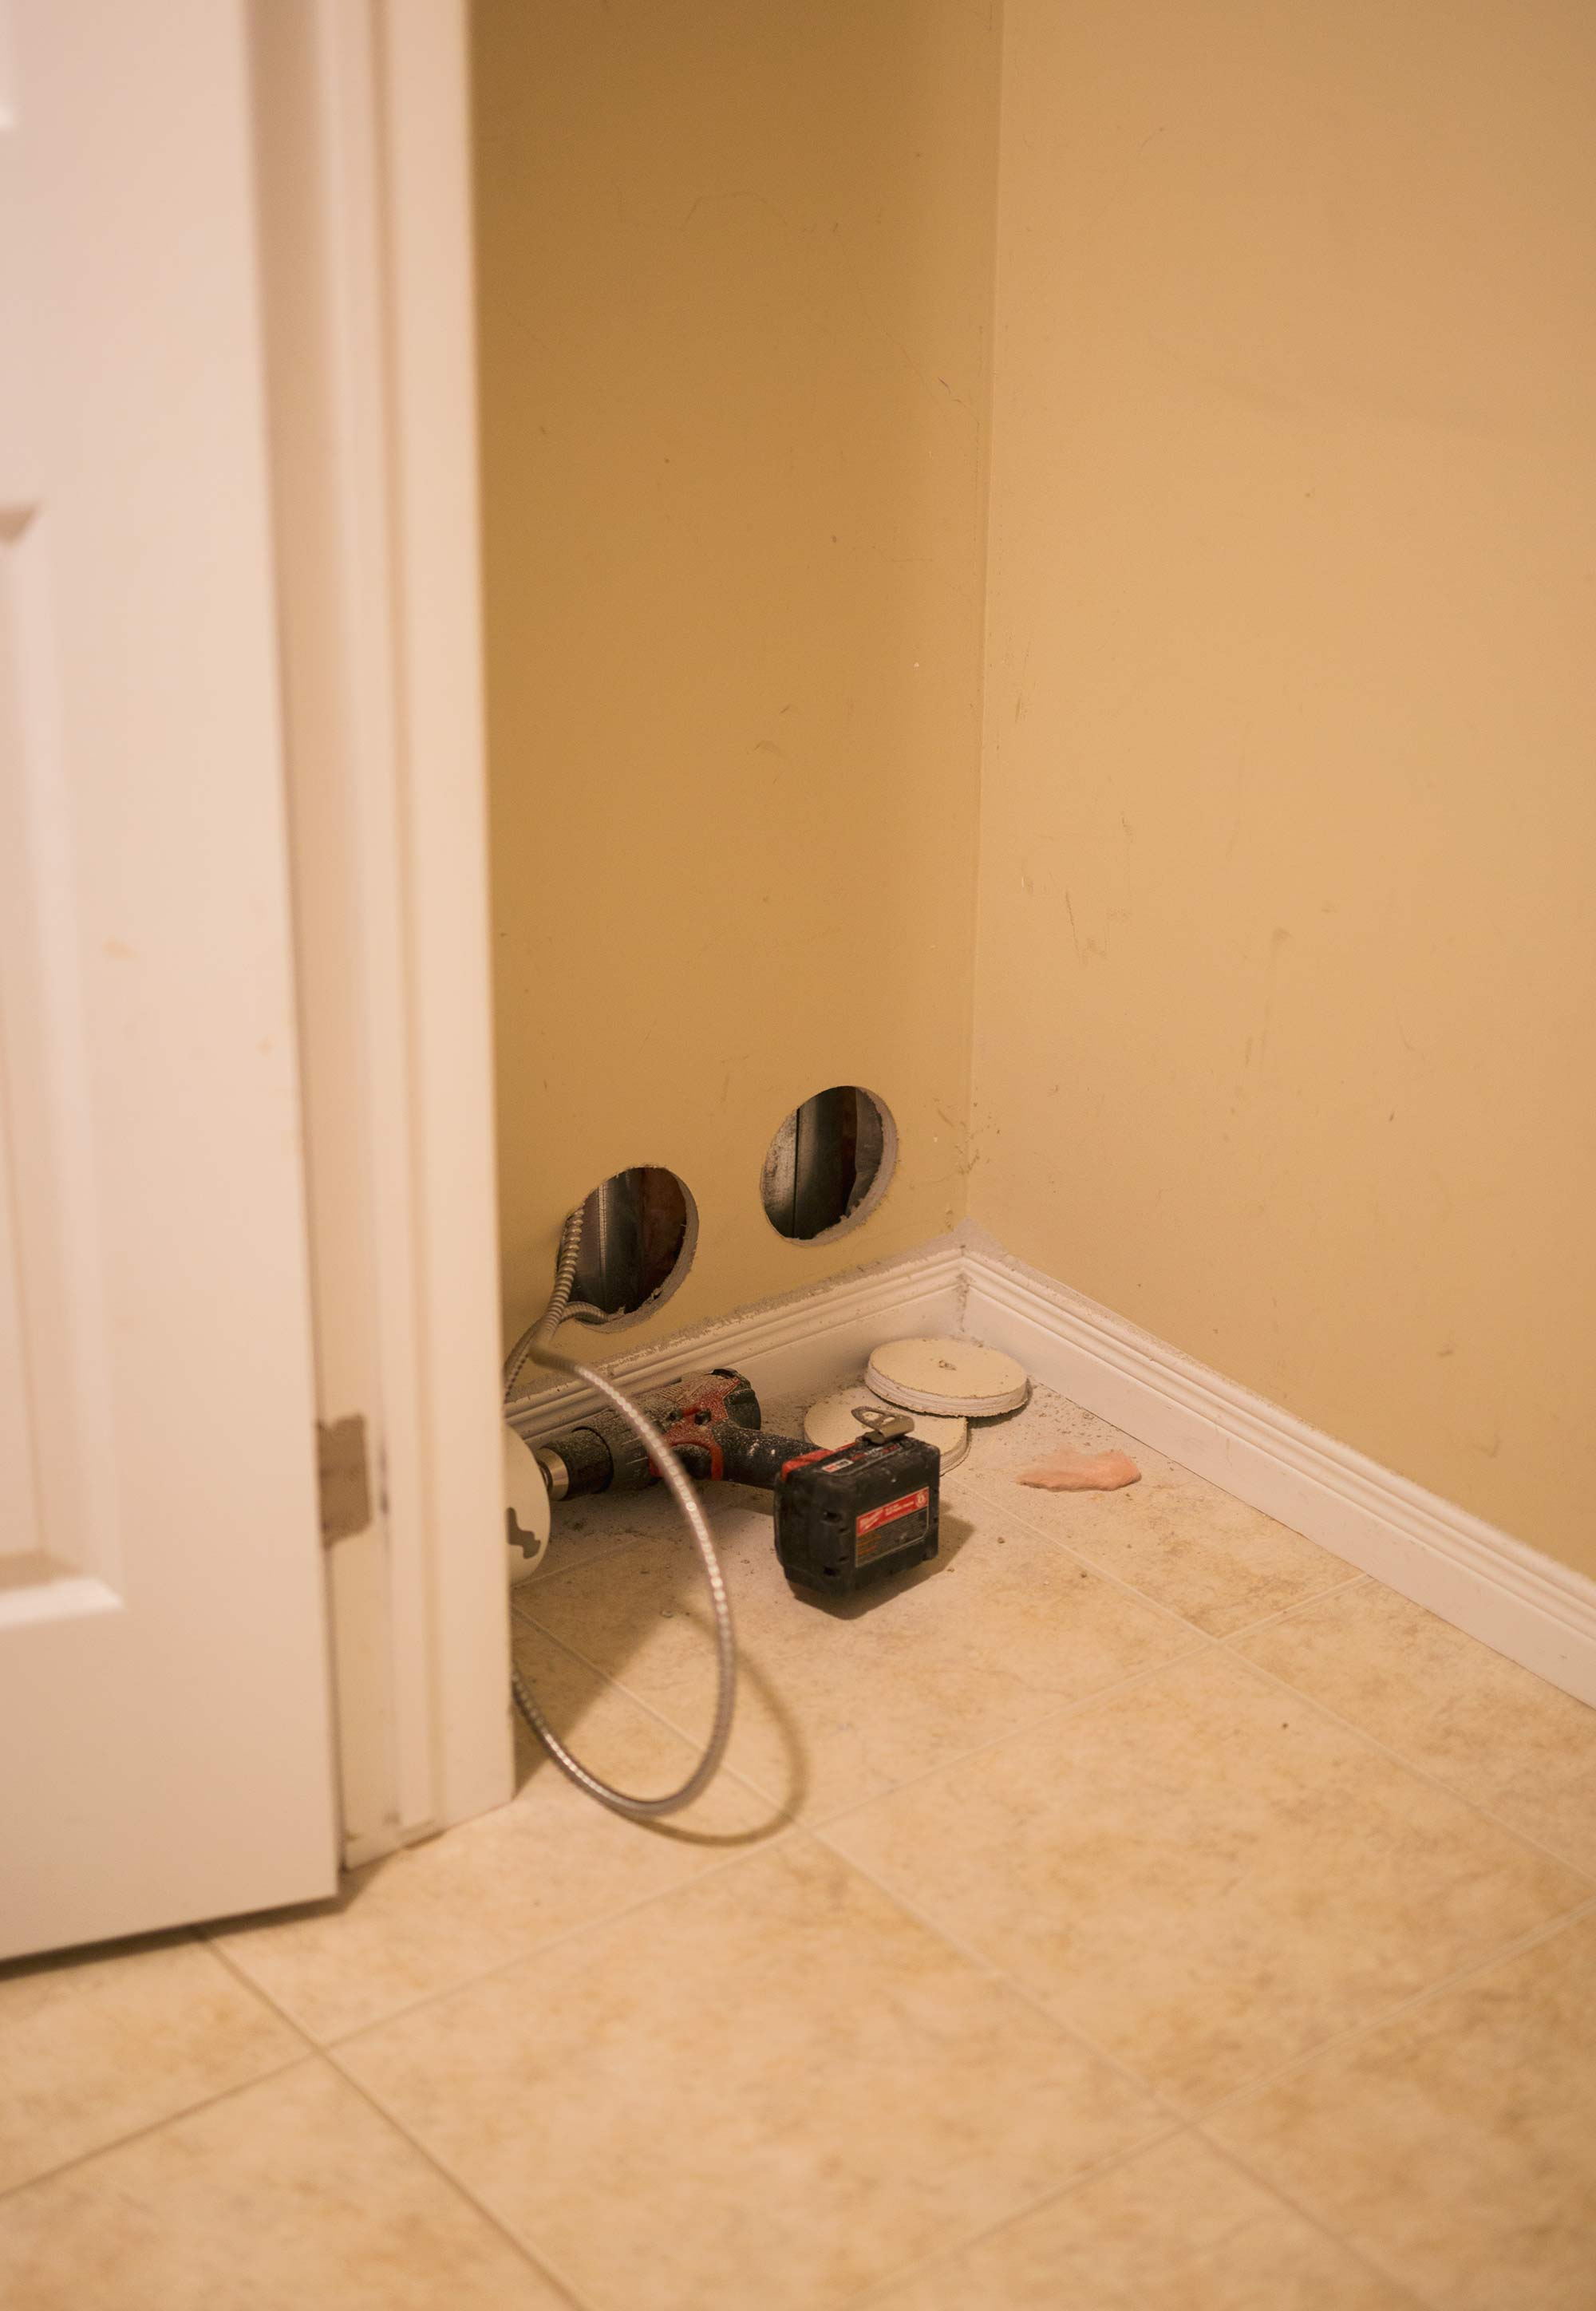 holes-to-install-new-lighting-electrical